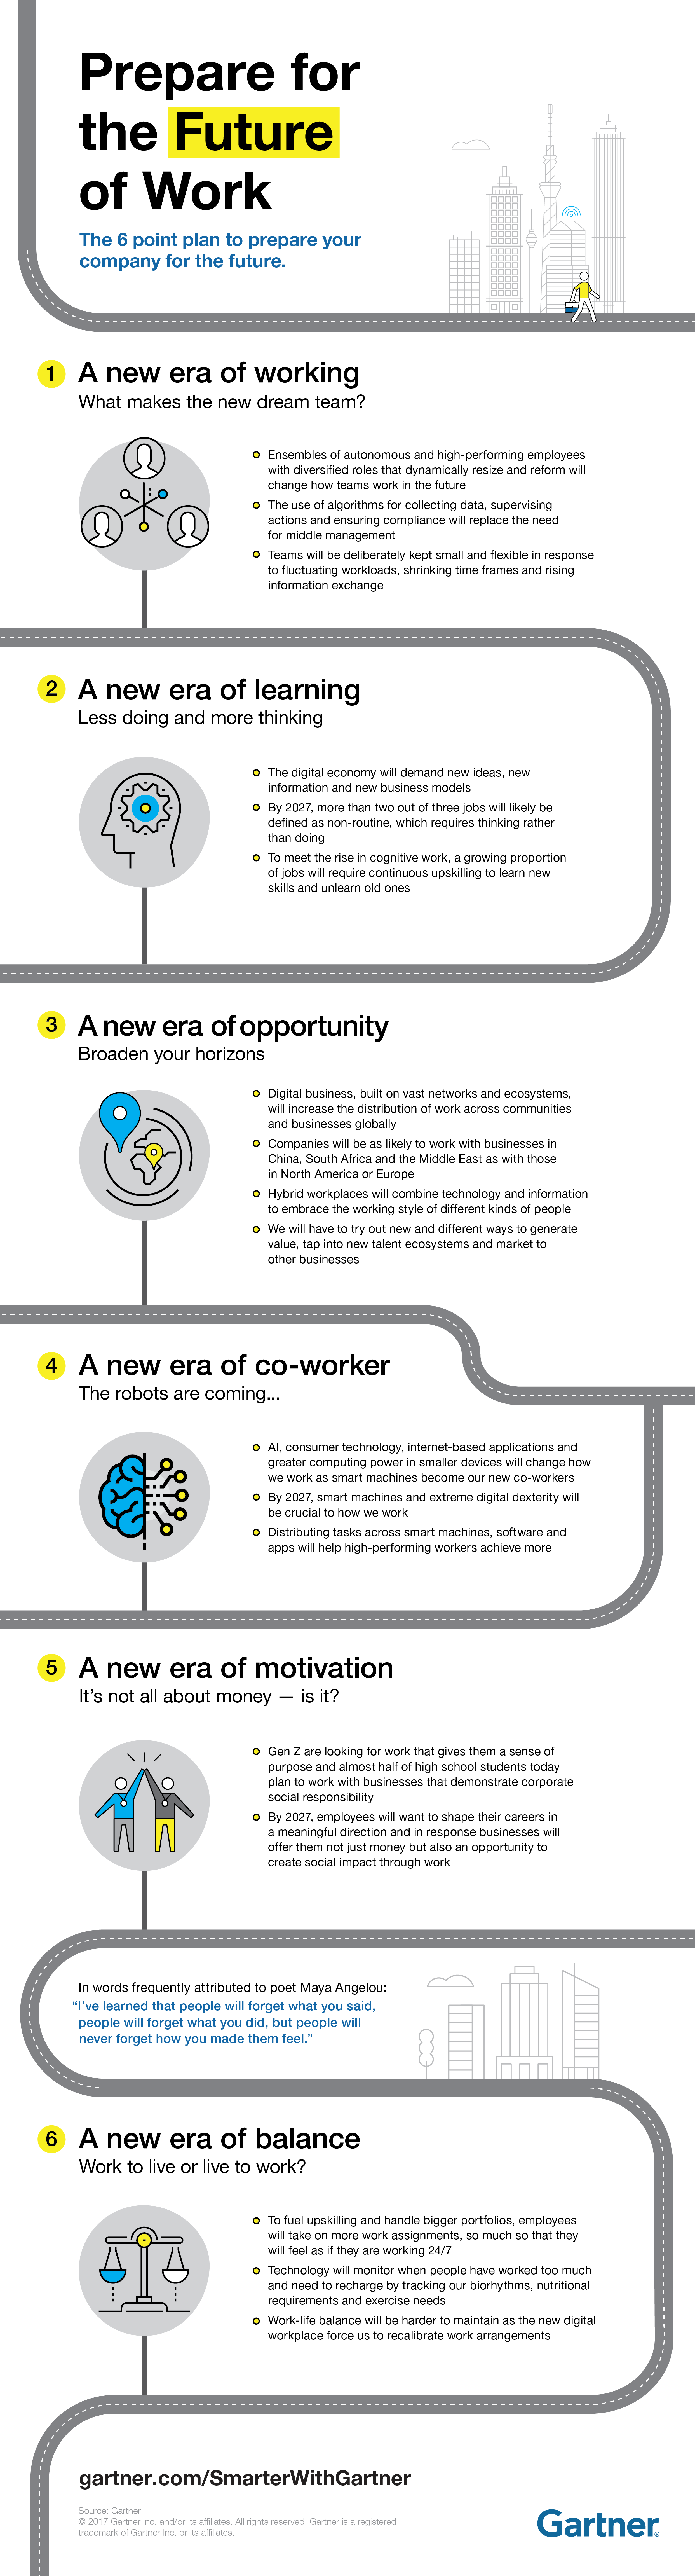 Gartner Shows how Leaders can Prepare for the Future of Work